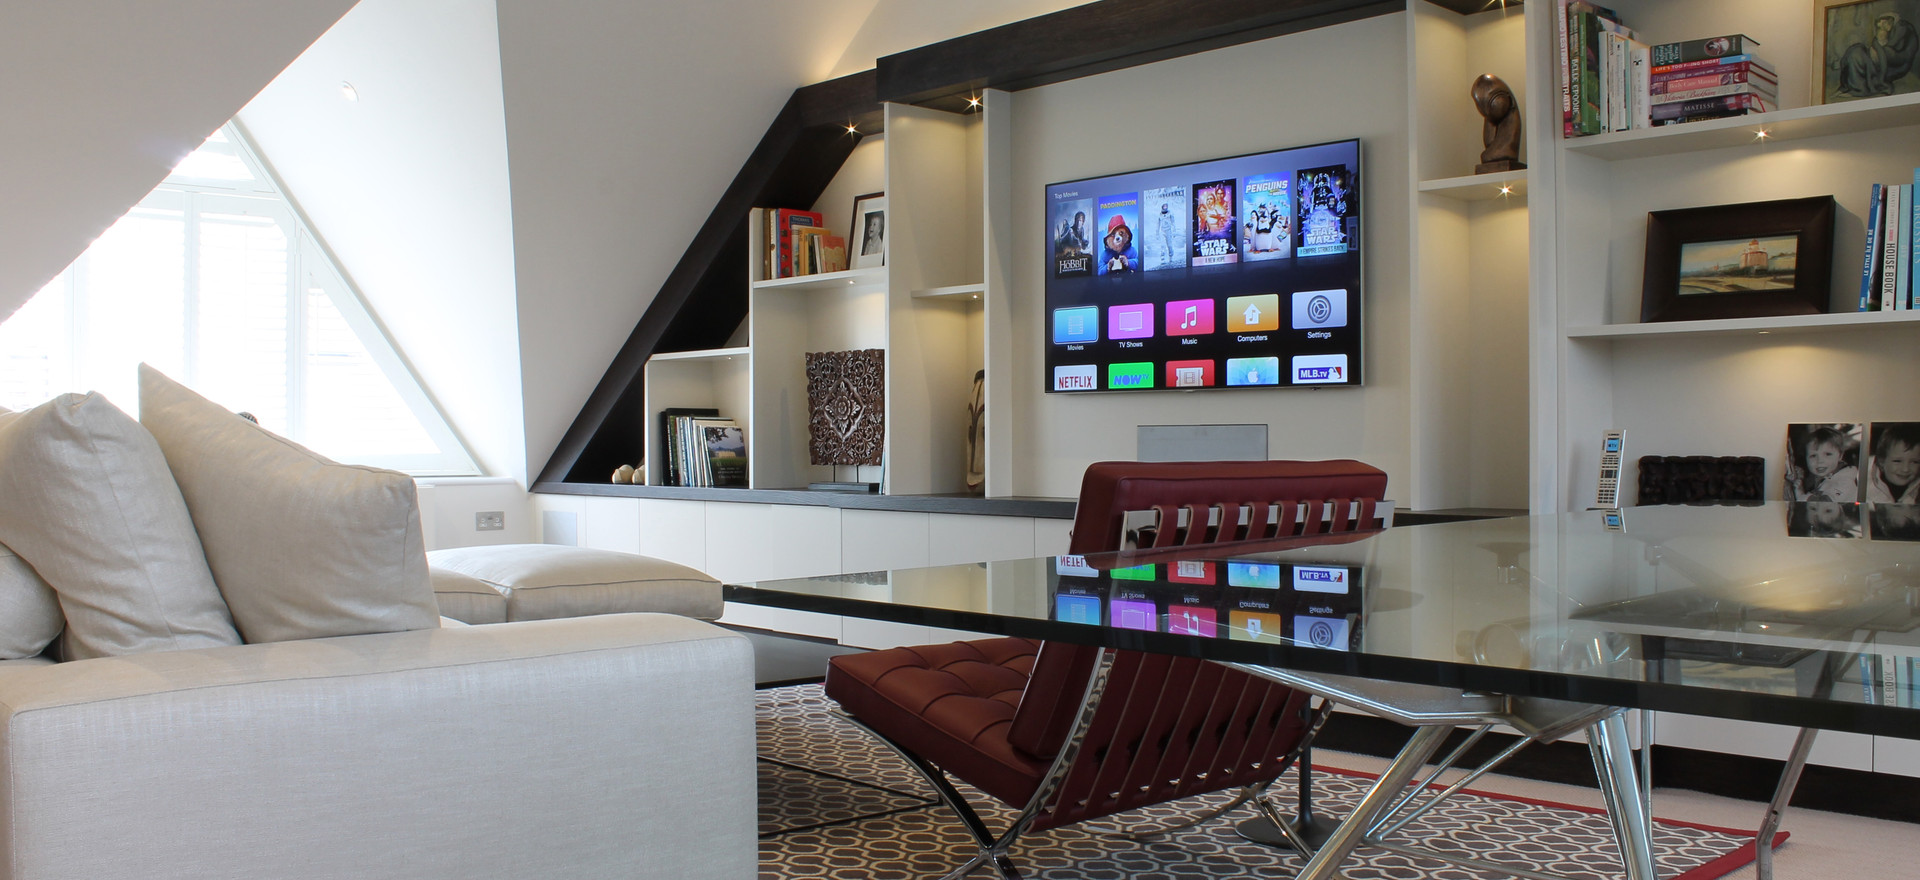 Television View